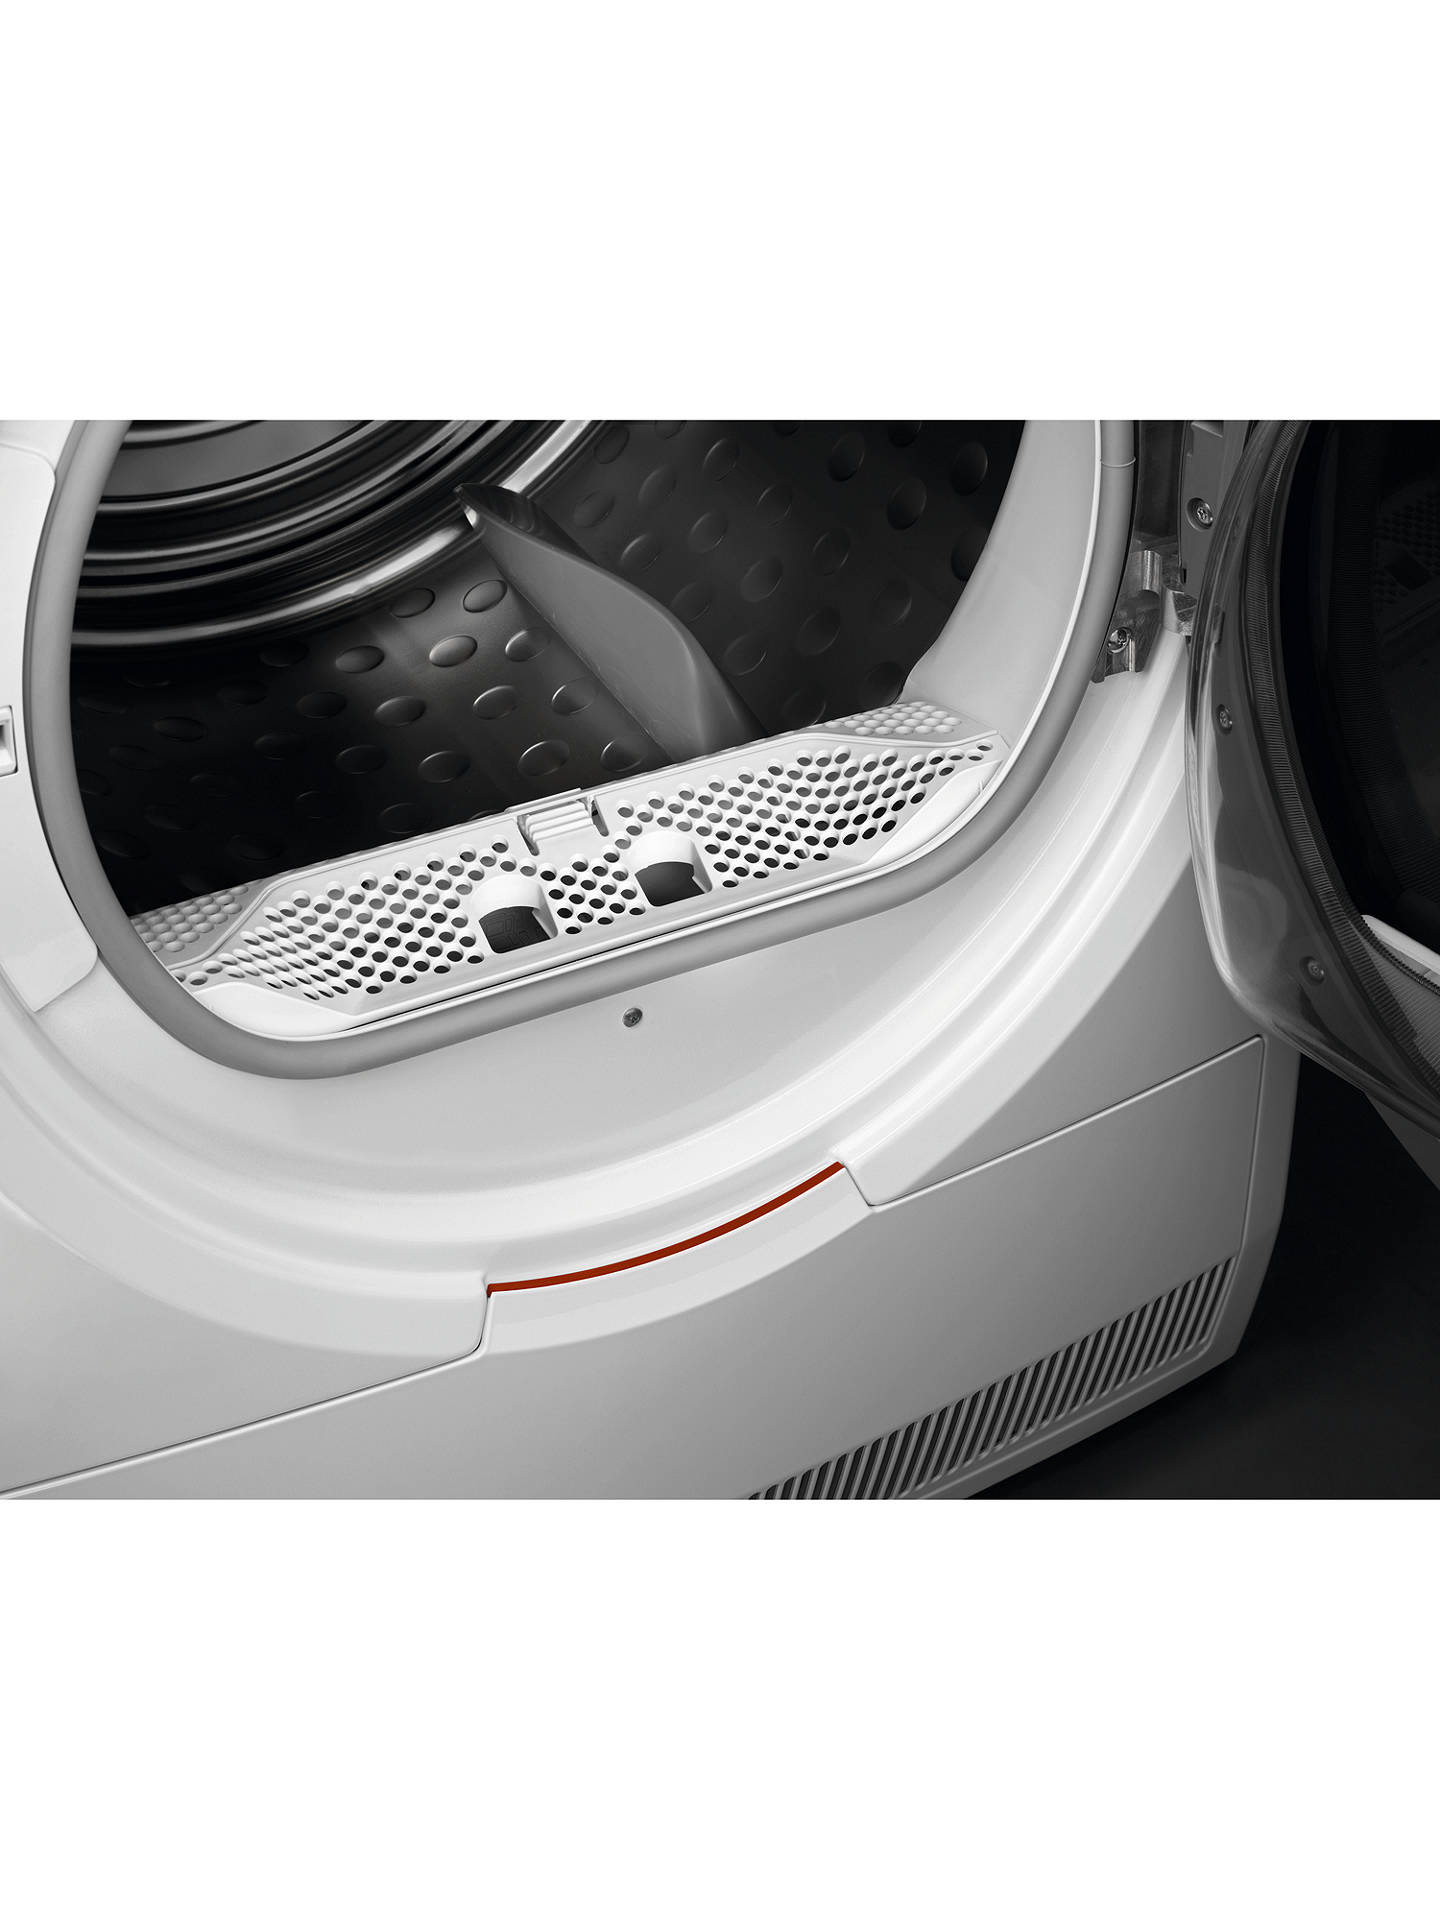 BuyAEG T8DEC946S 8000 Series Heat Pump Tumble Dryer, 9kg Load, A++ Energy Rating, White Online at johnlewis.com